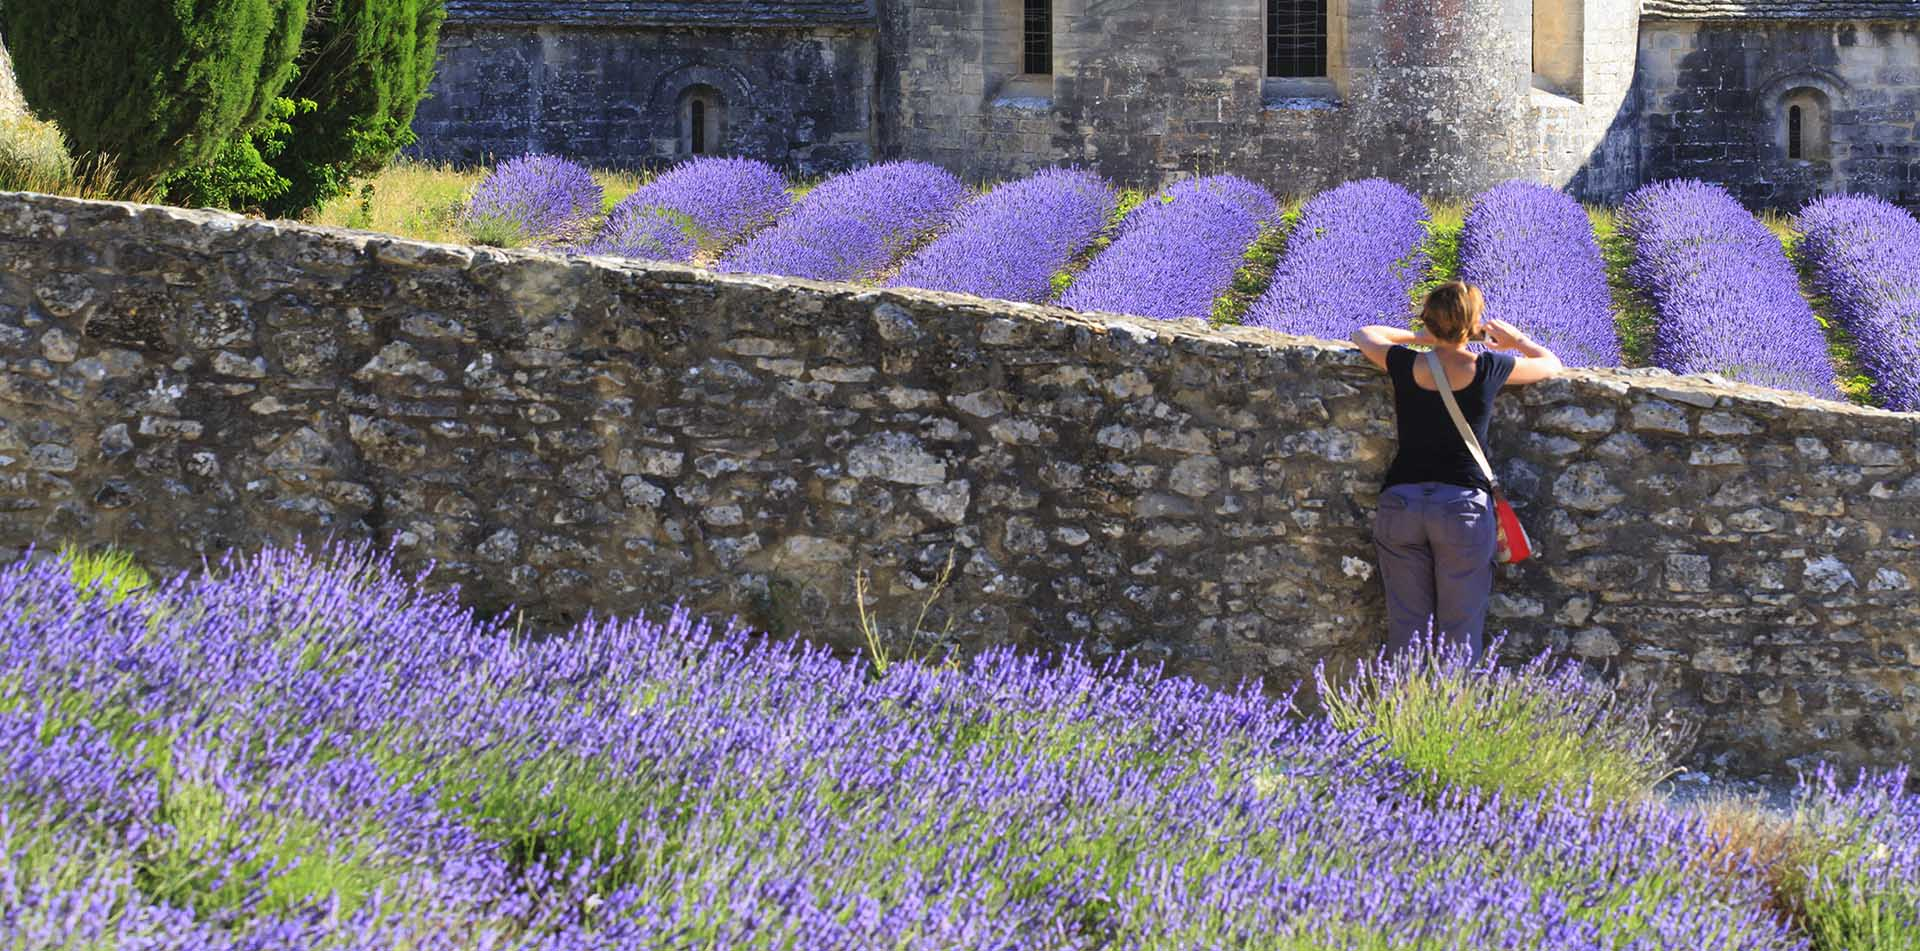 Europe France Provence woman in lavender fields in Luberon Regional Nature Park - luxury vacation destinations